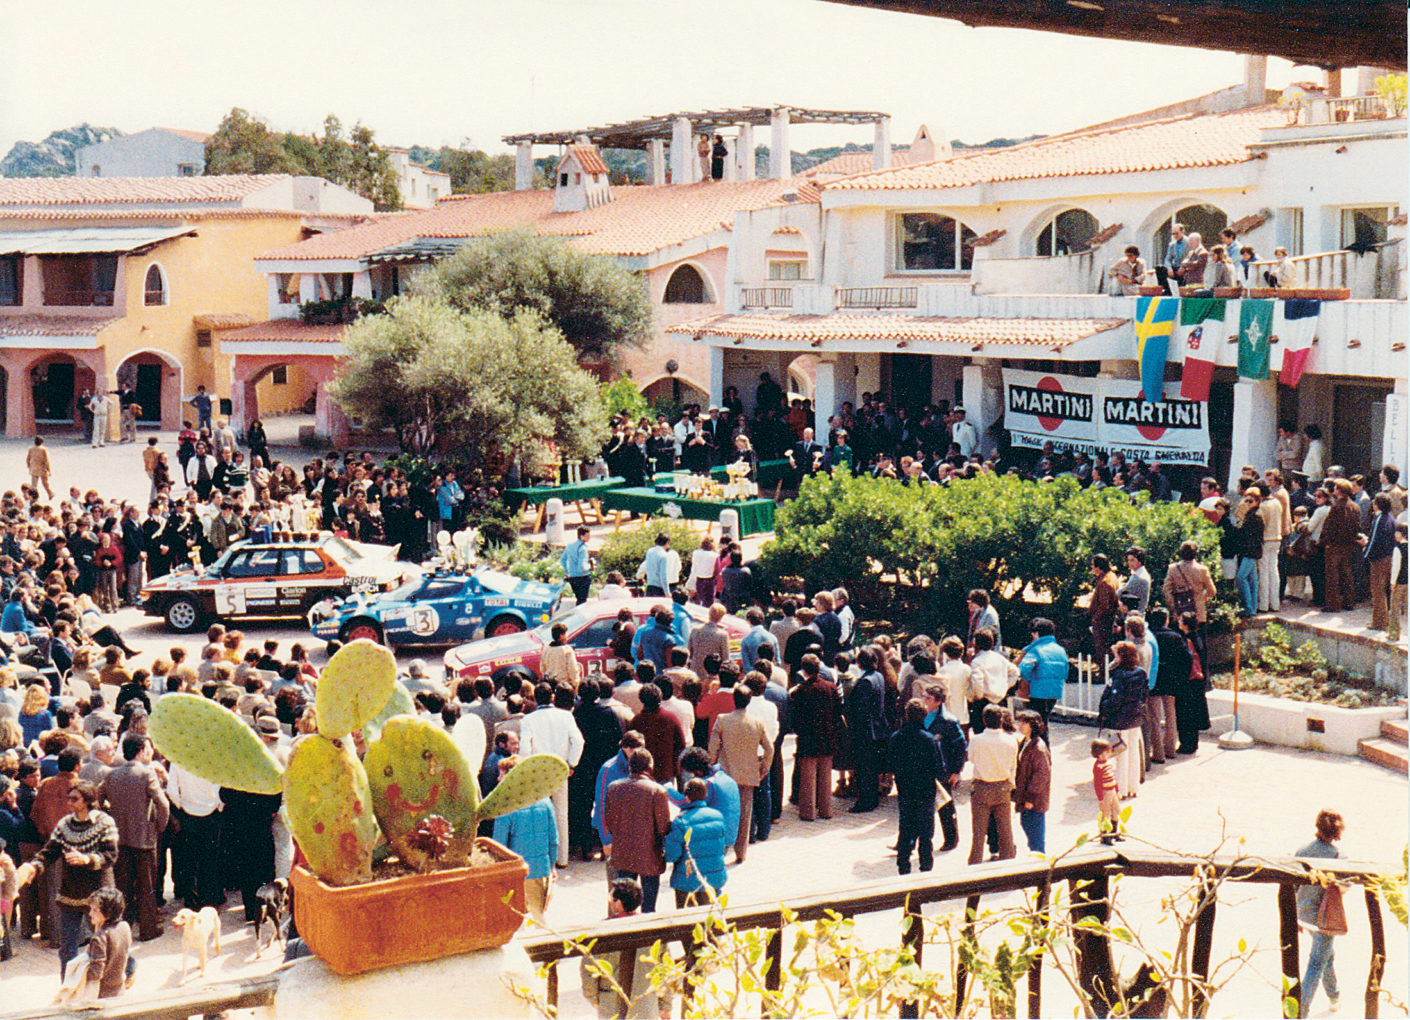 Cup presentation at the Rally Costa Smeralda on the main square of Porto Cervo (photo c. 1980)